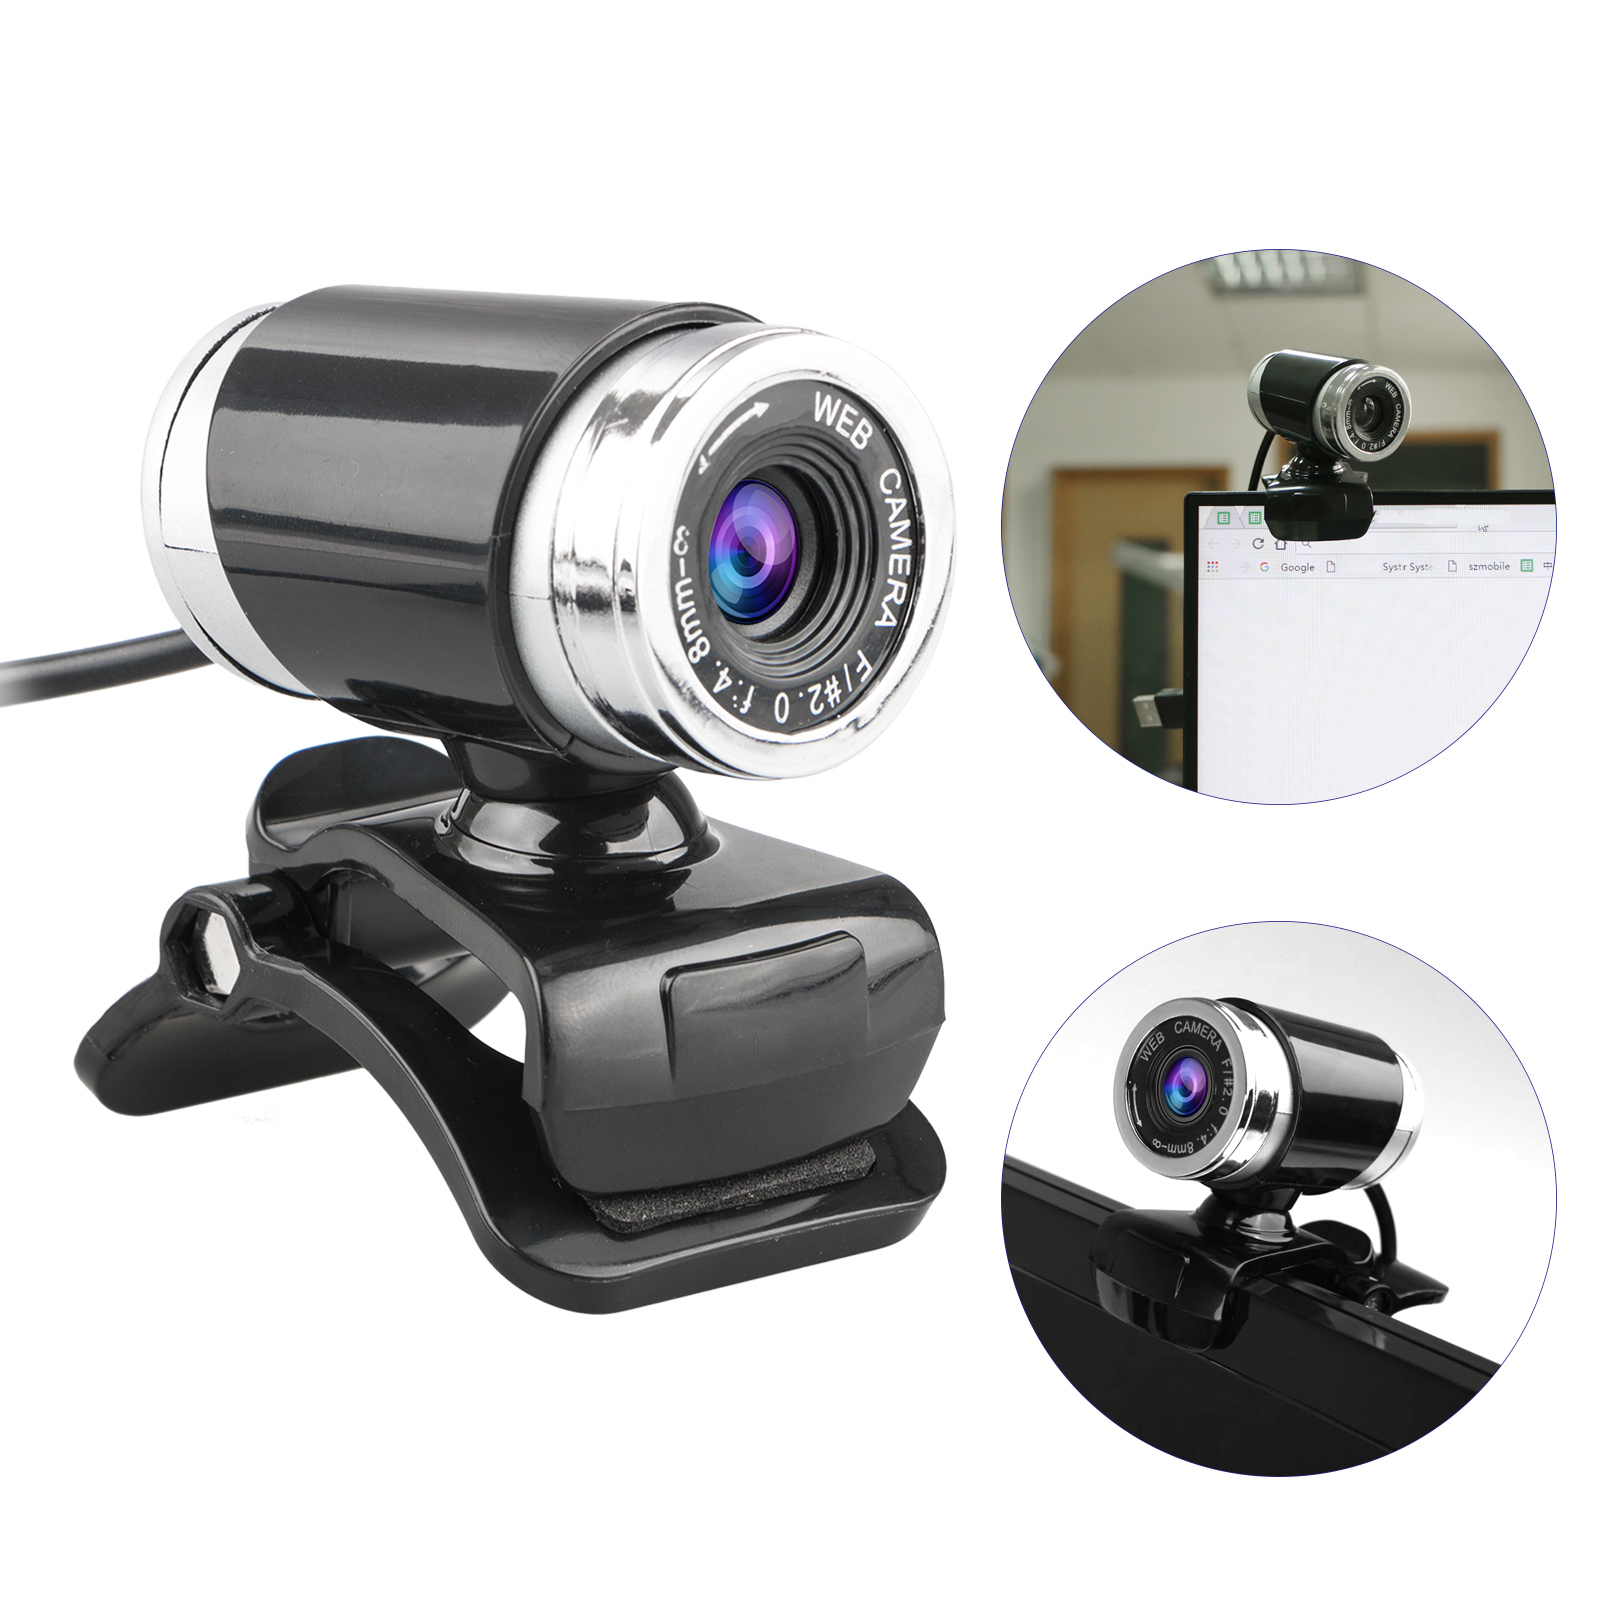 Webcam USB 12 Megapixel HD Pro Widescreen Video Full 1080p Camera , Built in Microphone and Stand for Windows PC, Laptops and Apple OS X